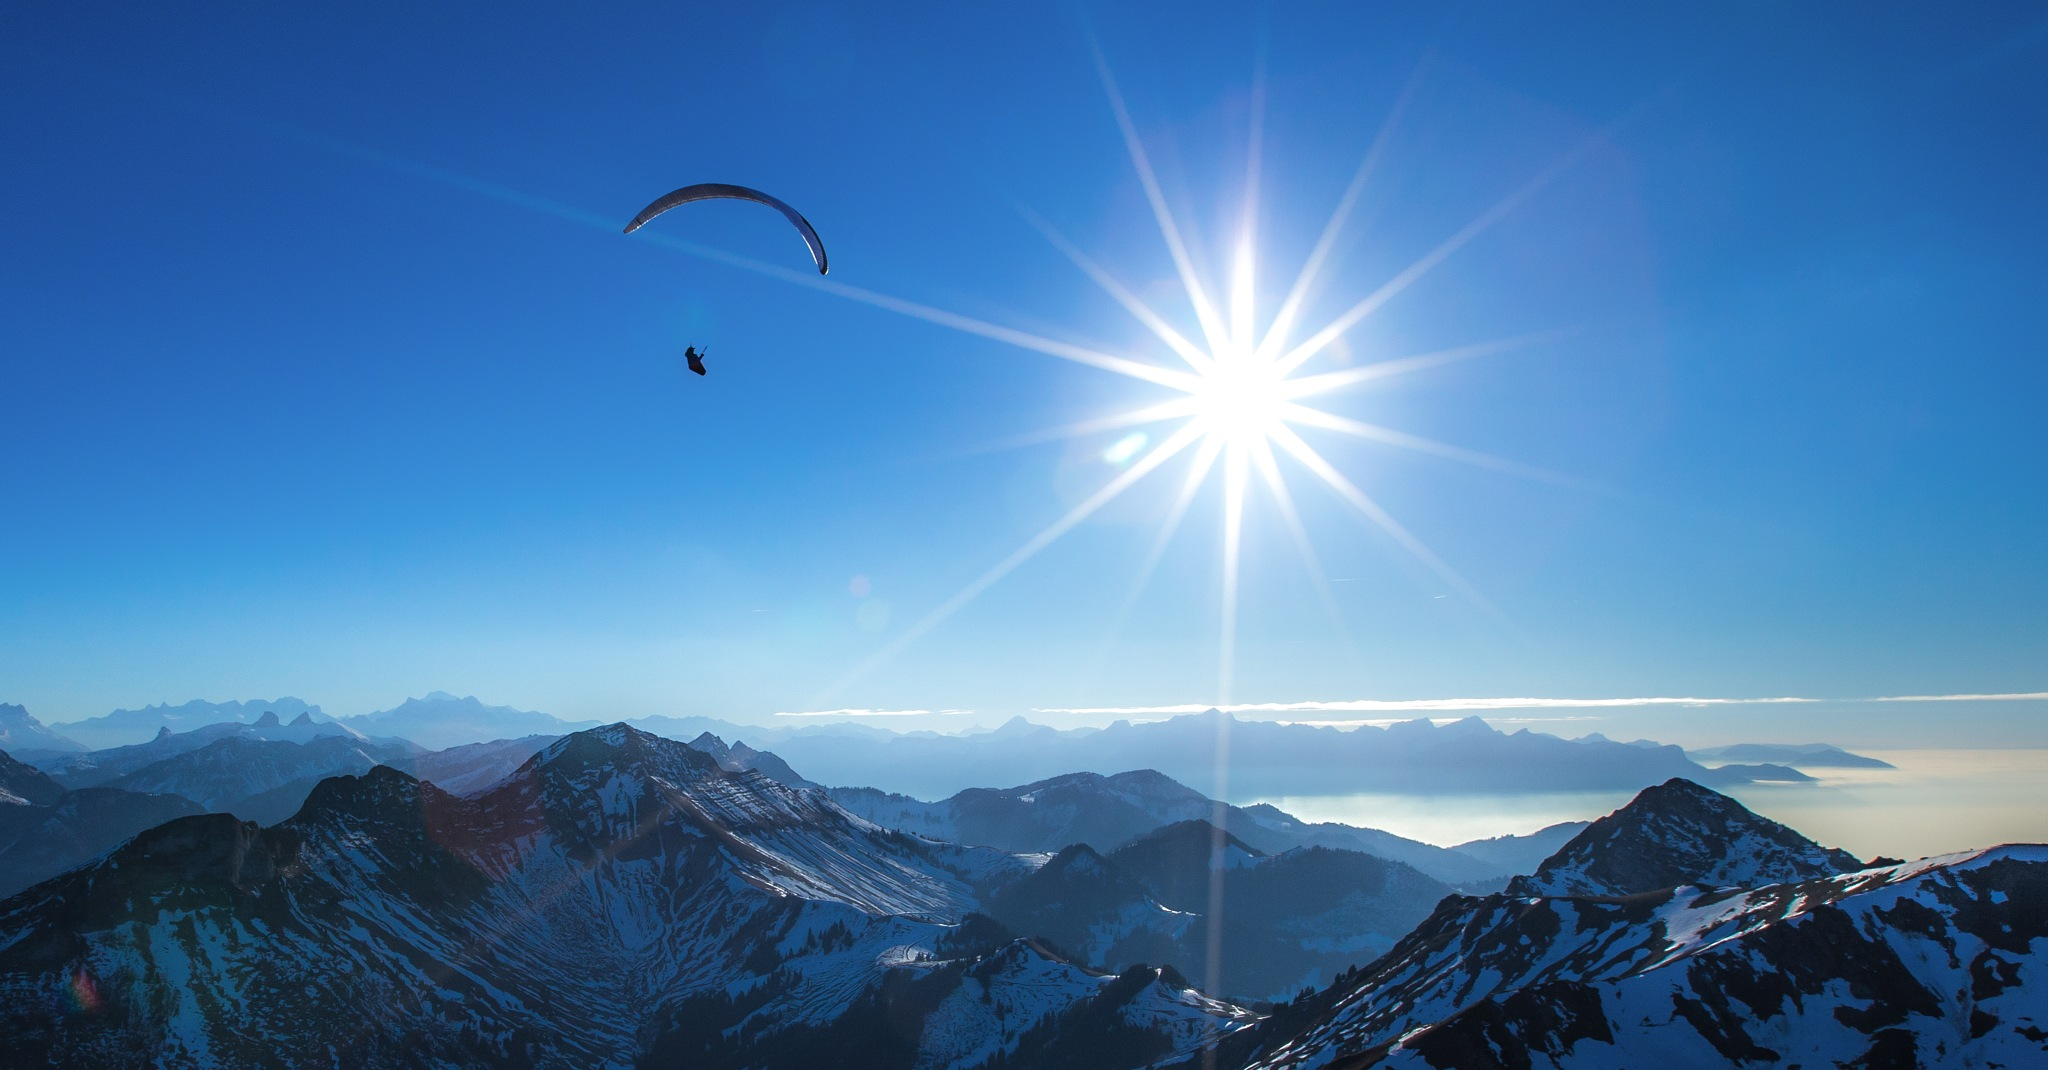 Above the clouds by Arnault DE PERETTI